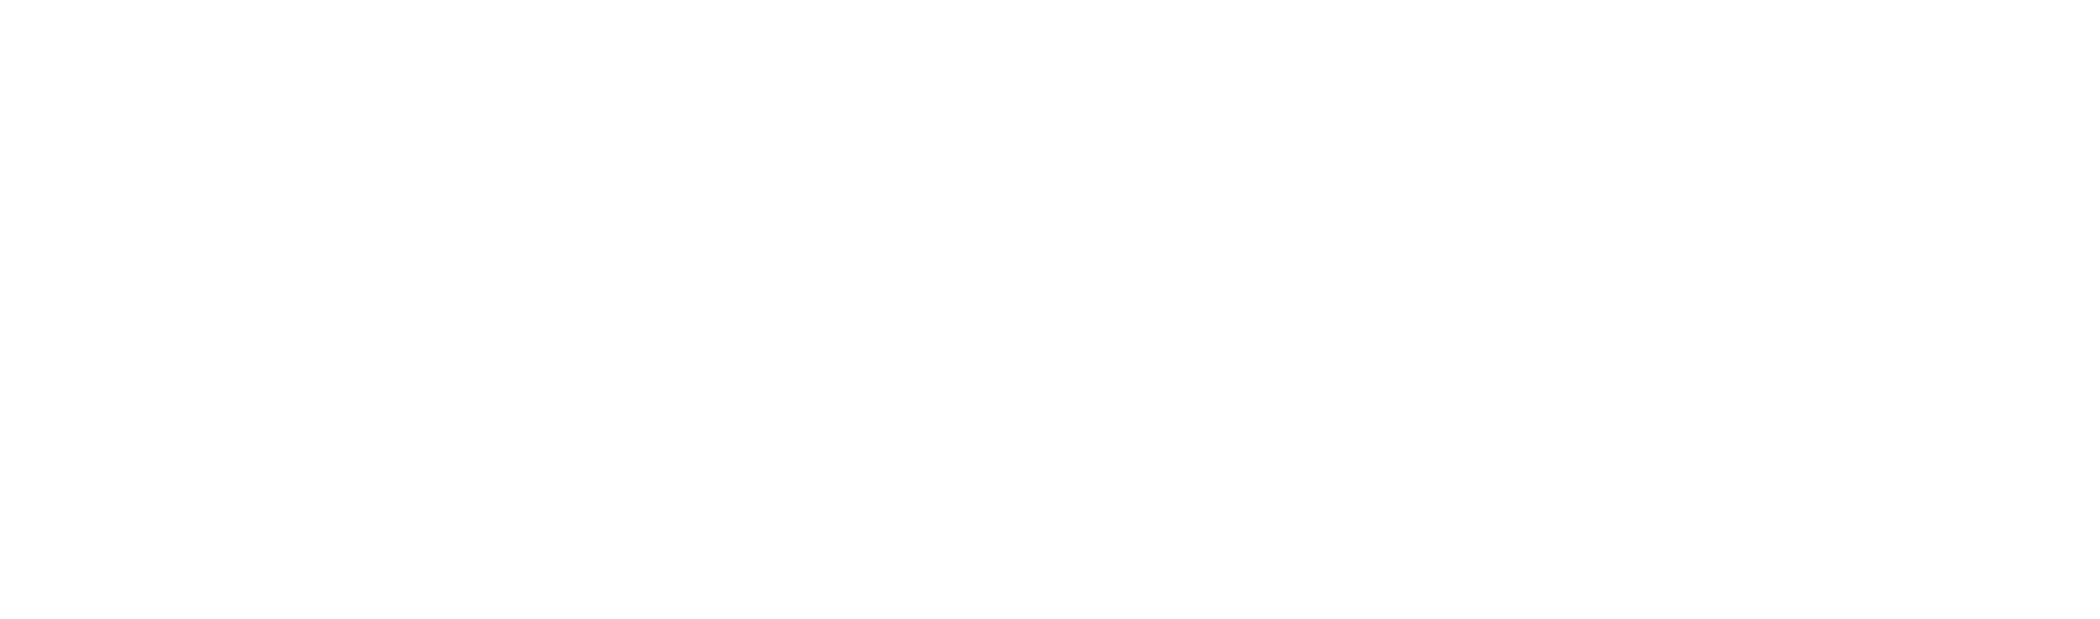 uconn one card office logo